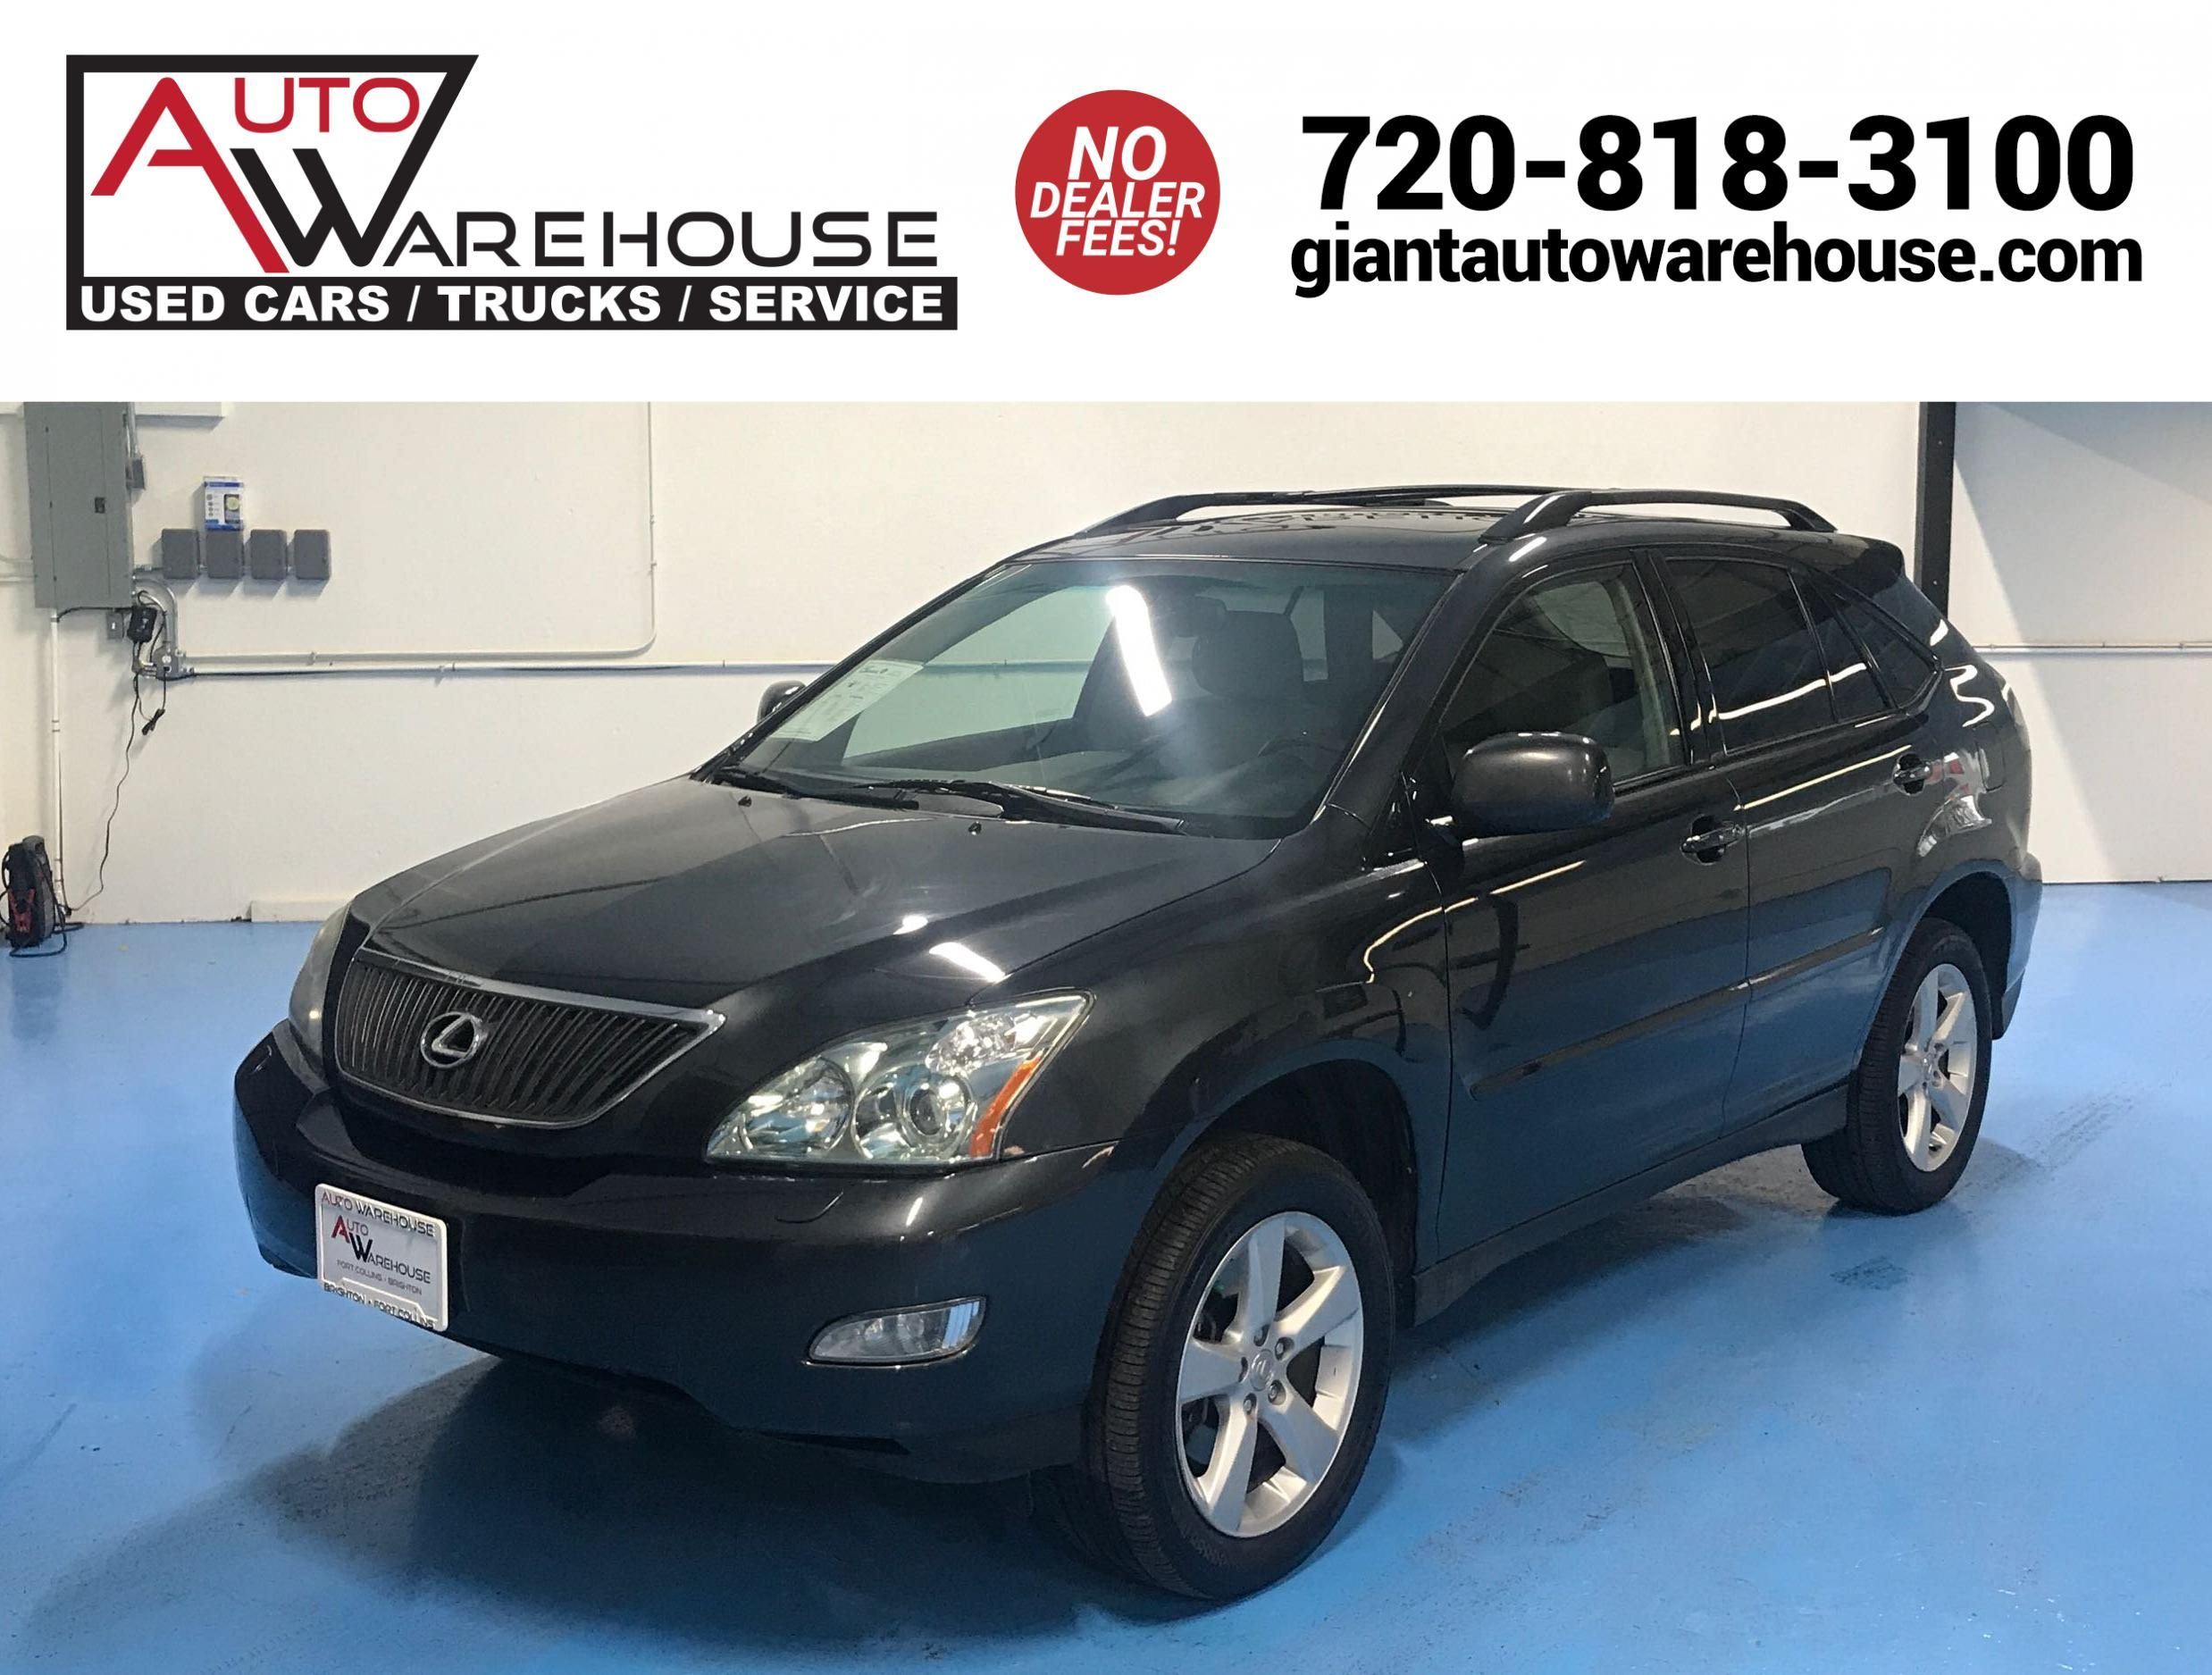 Inventory Auto Warehouse 2005 Lexus Rx330 Interior 2004 Rx 330